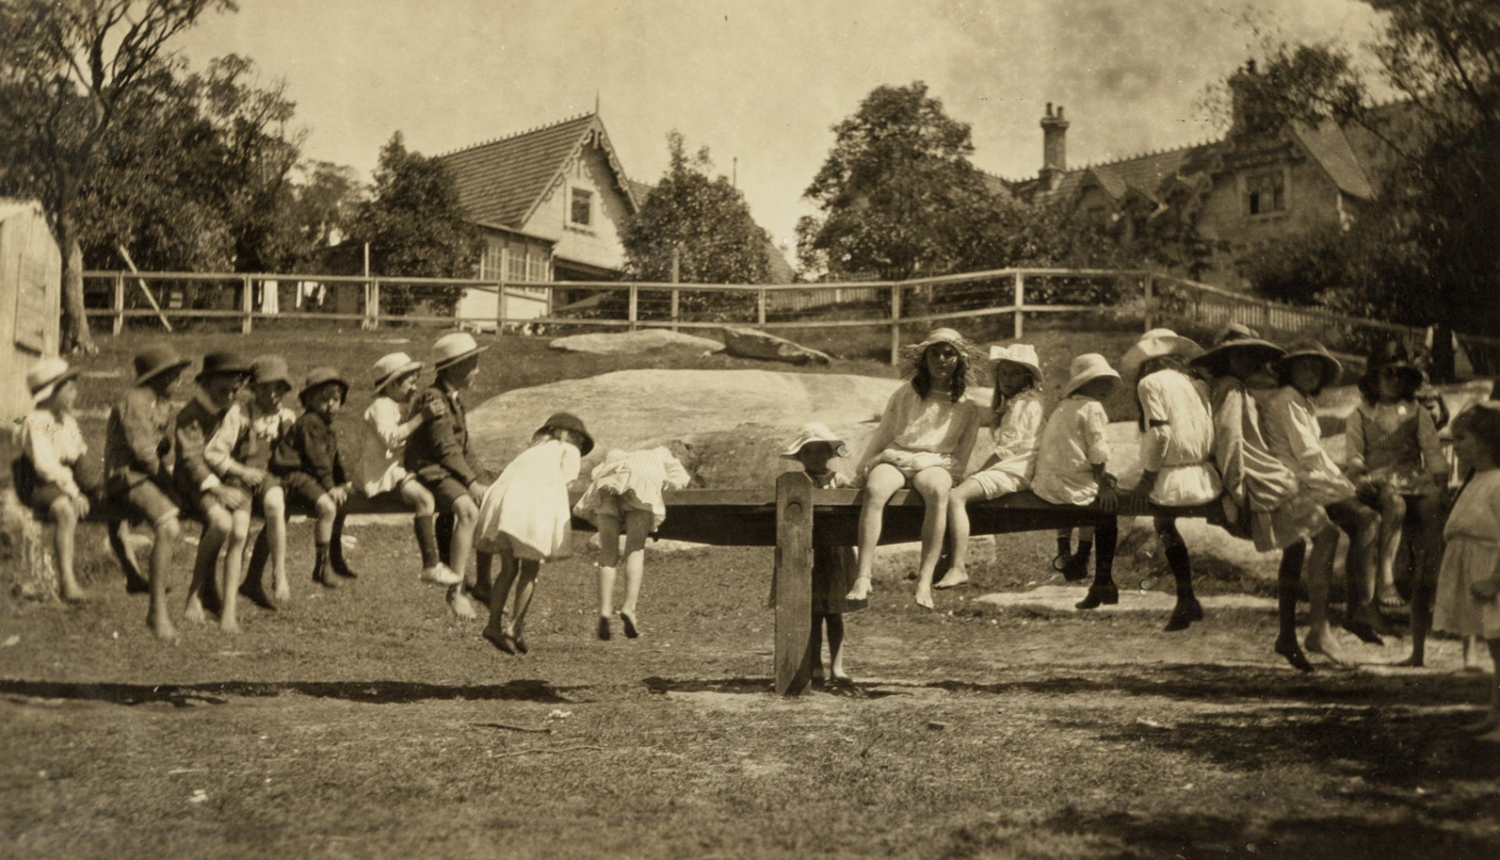 Black and white photograph of children on a seesaw